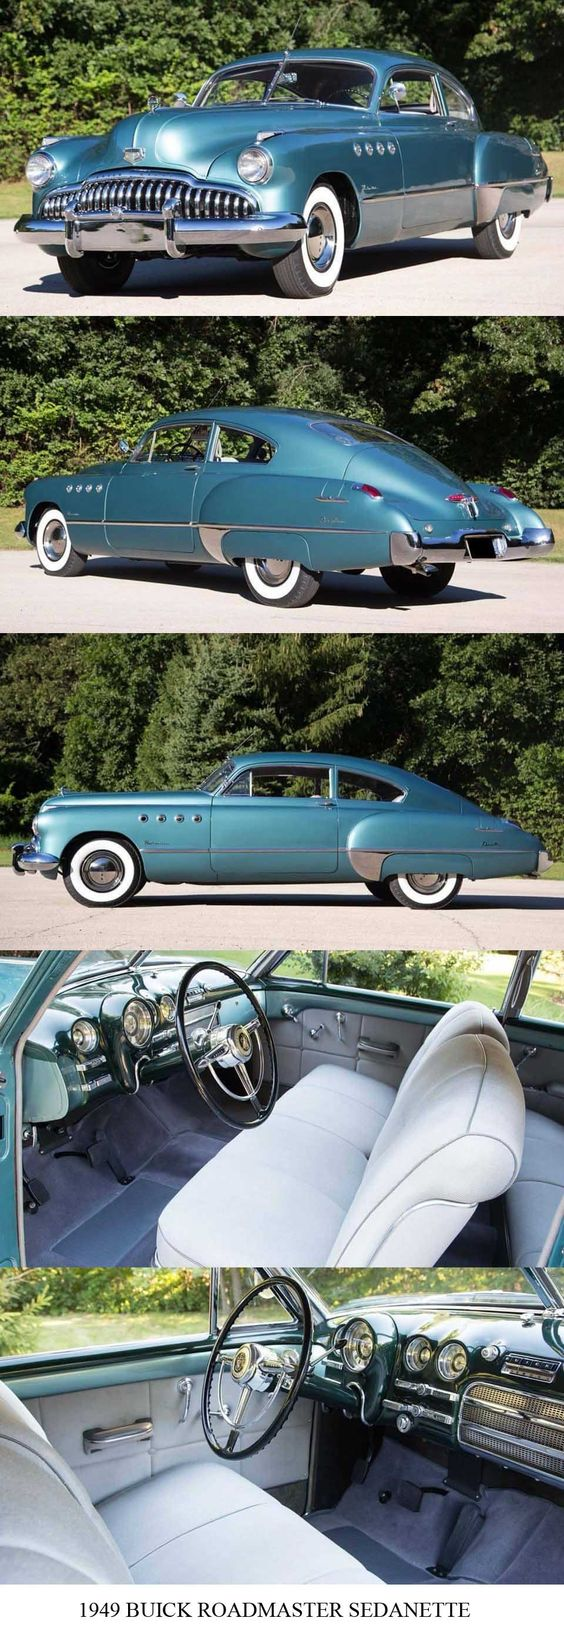 591 best Buick images on Pinterest | Cars, Old school cars and ...